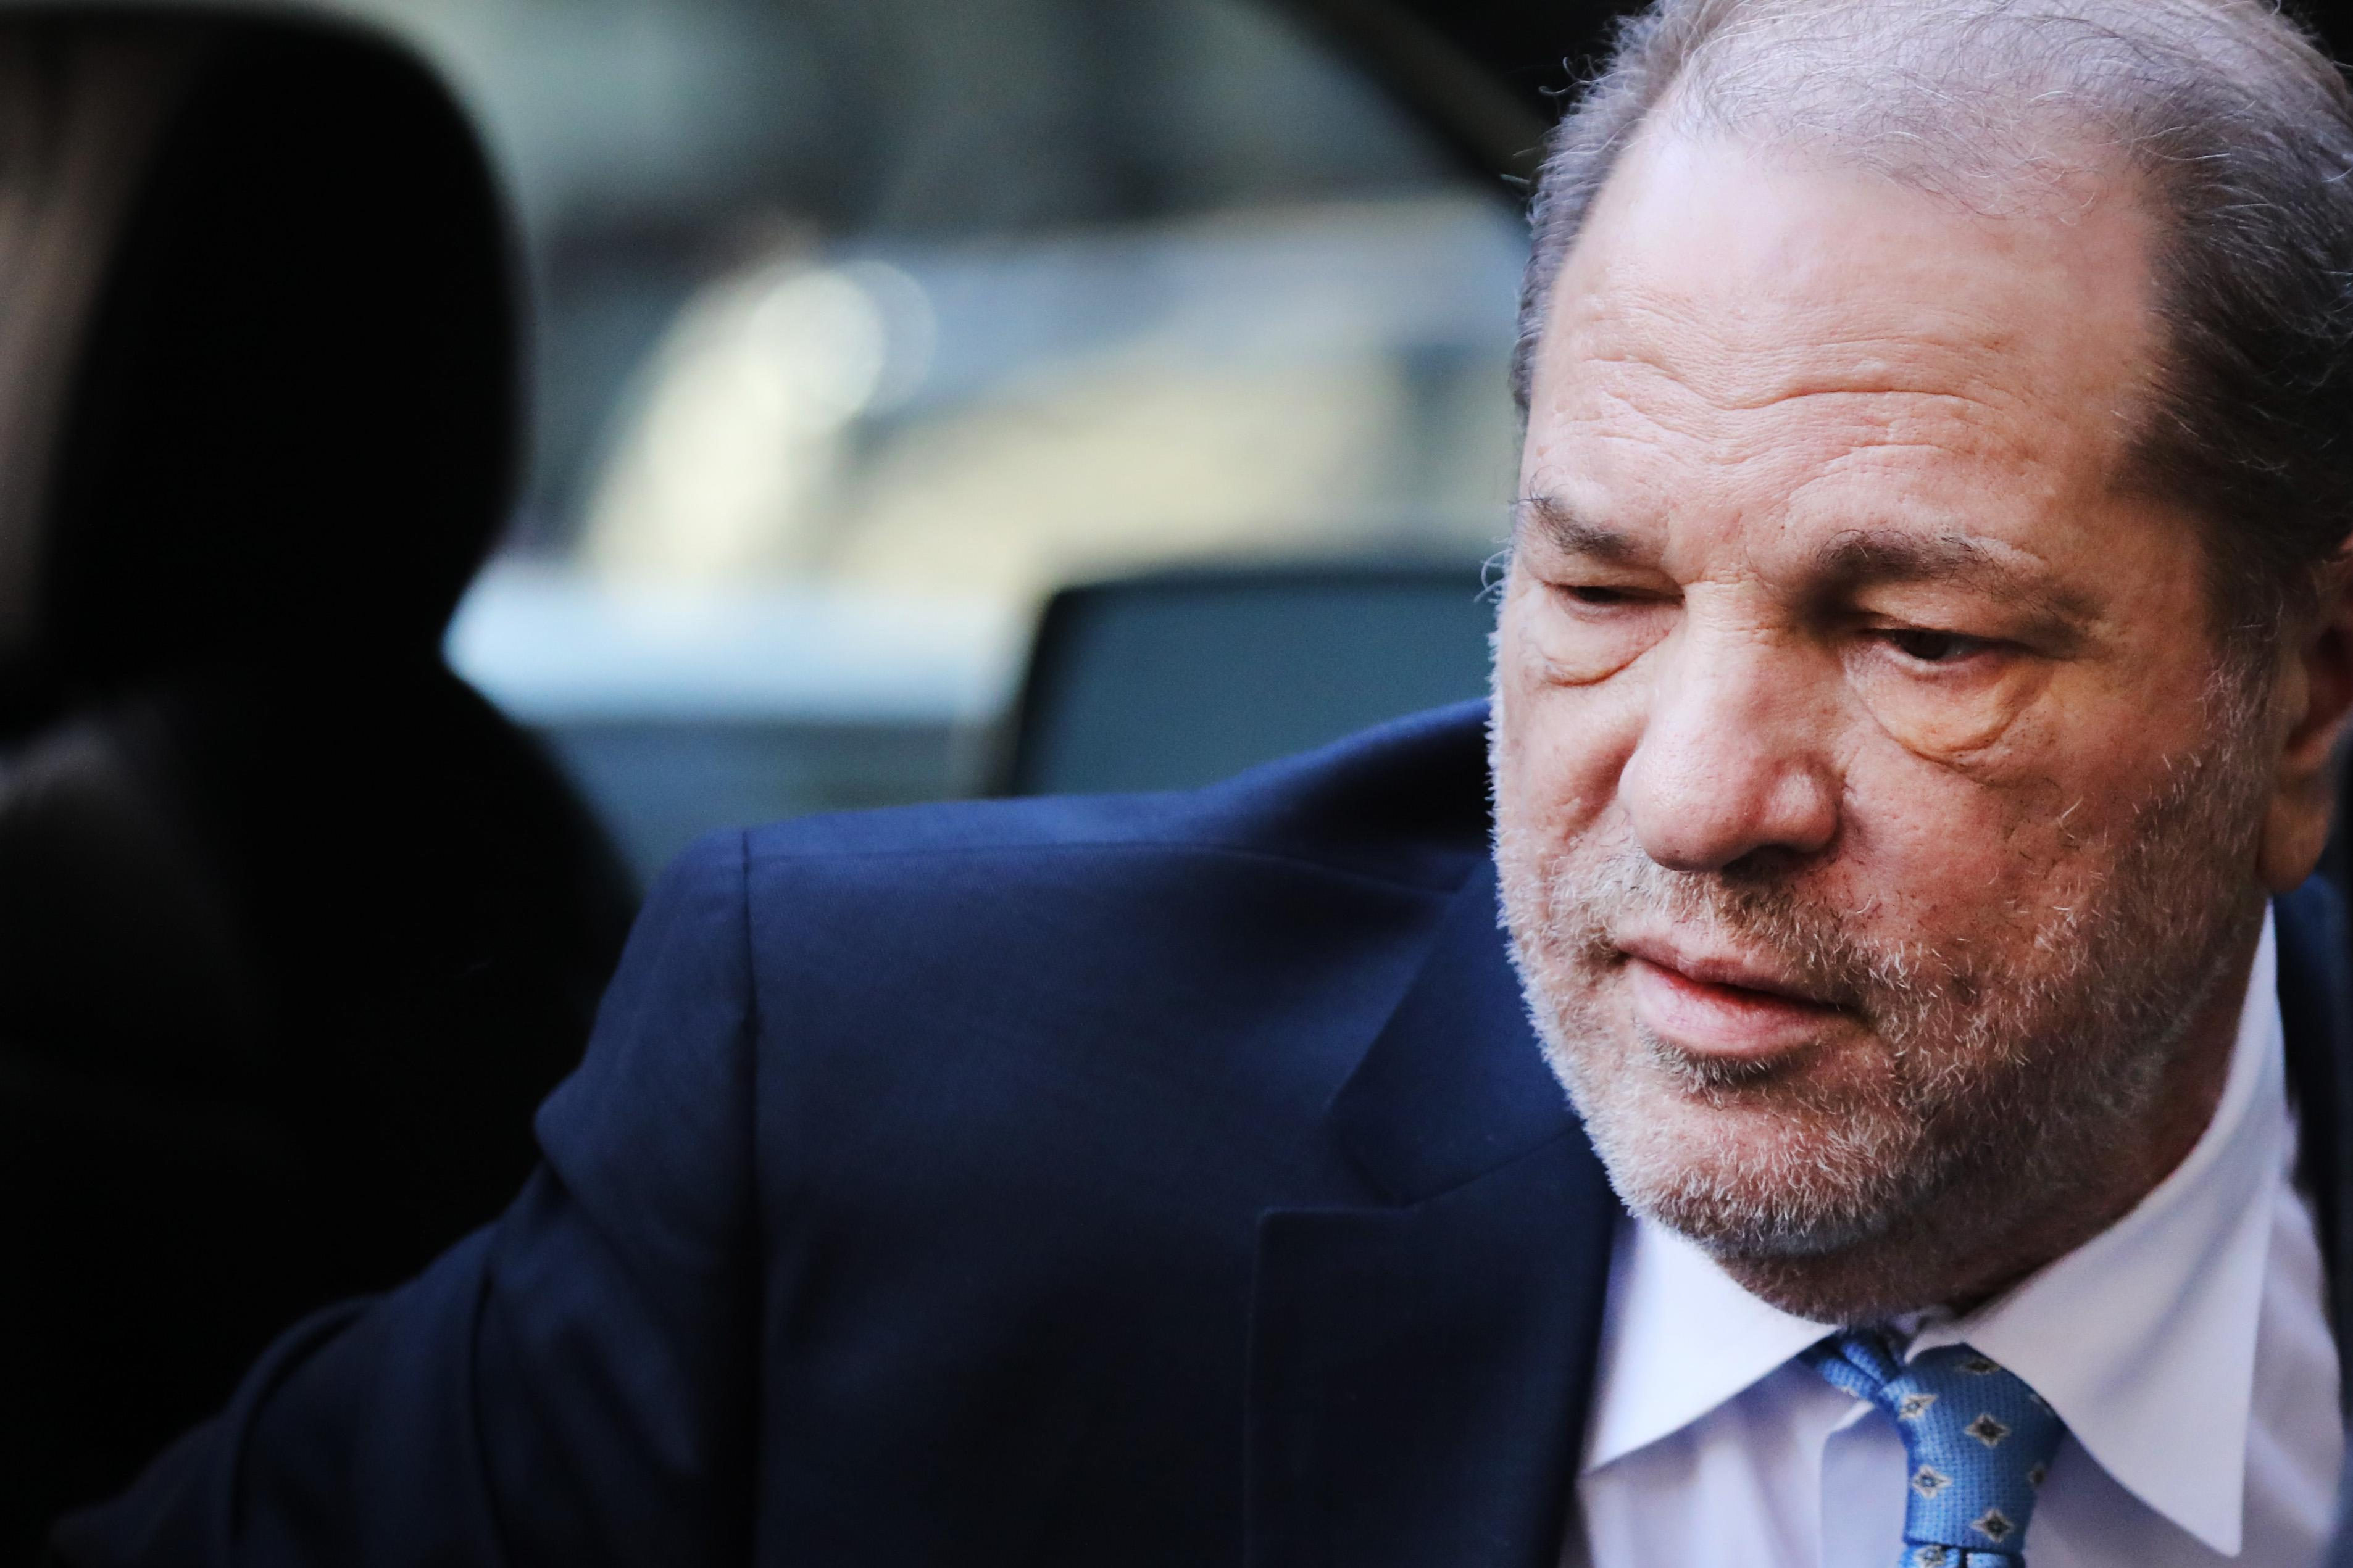 Where's Weinstein? Movie mogul remains hospitalized, not imprisoned, after rape conviction - Yahoo Entertainment